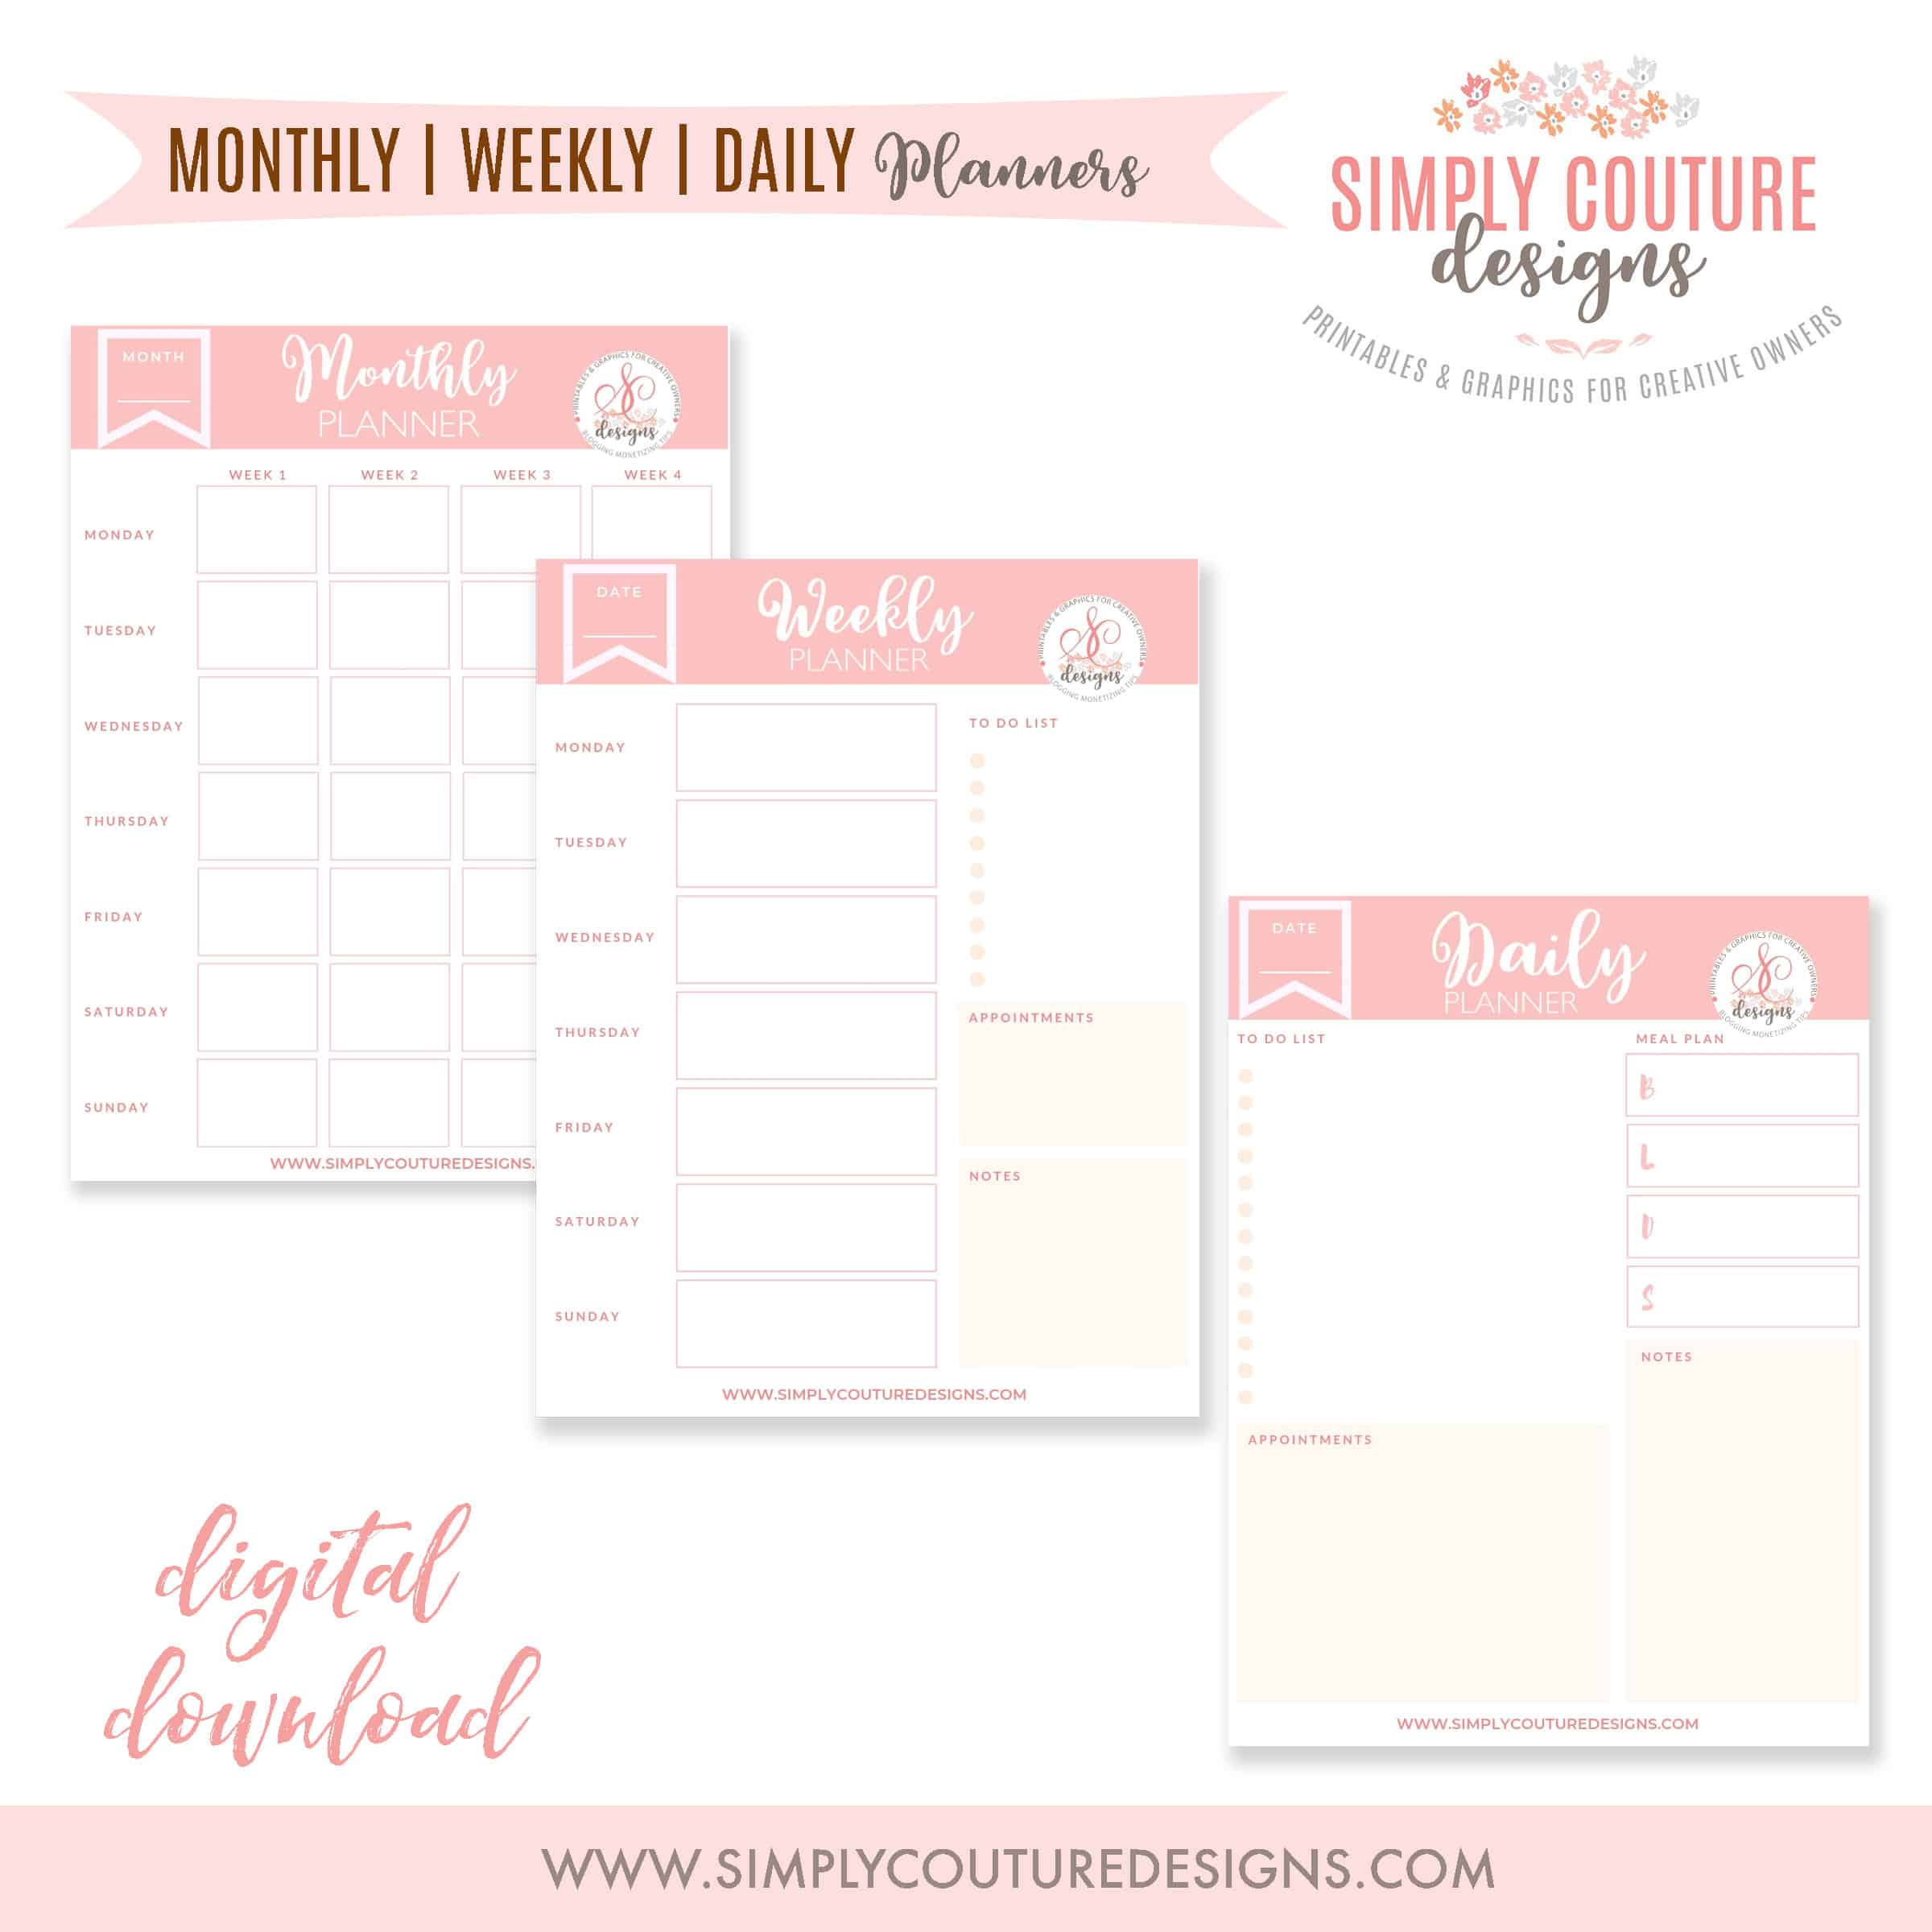 Monthly, Weekly and Daily Planner Printables, Digital Download